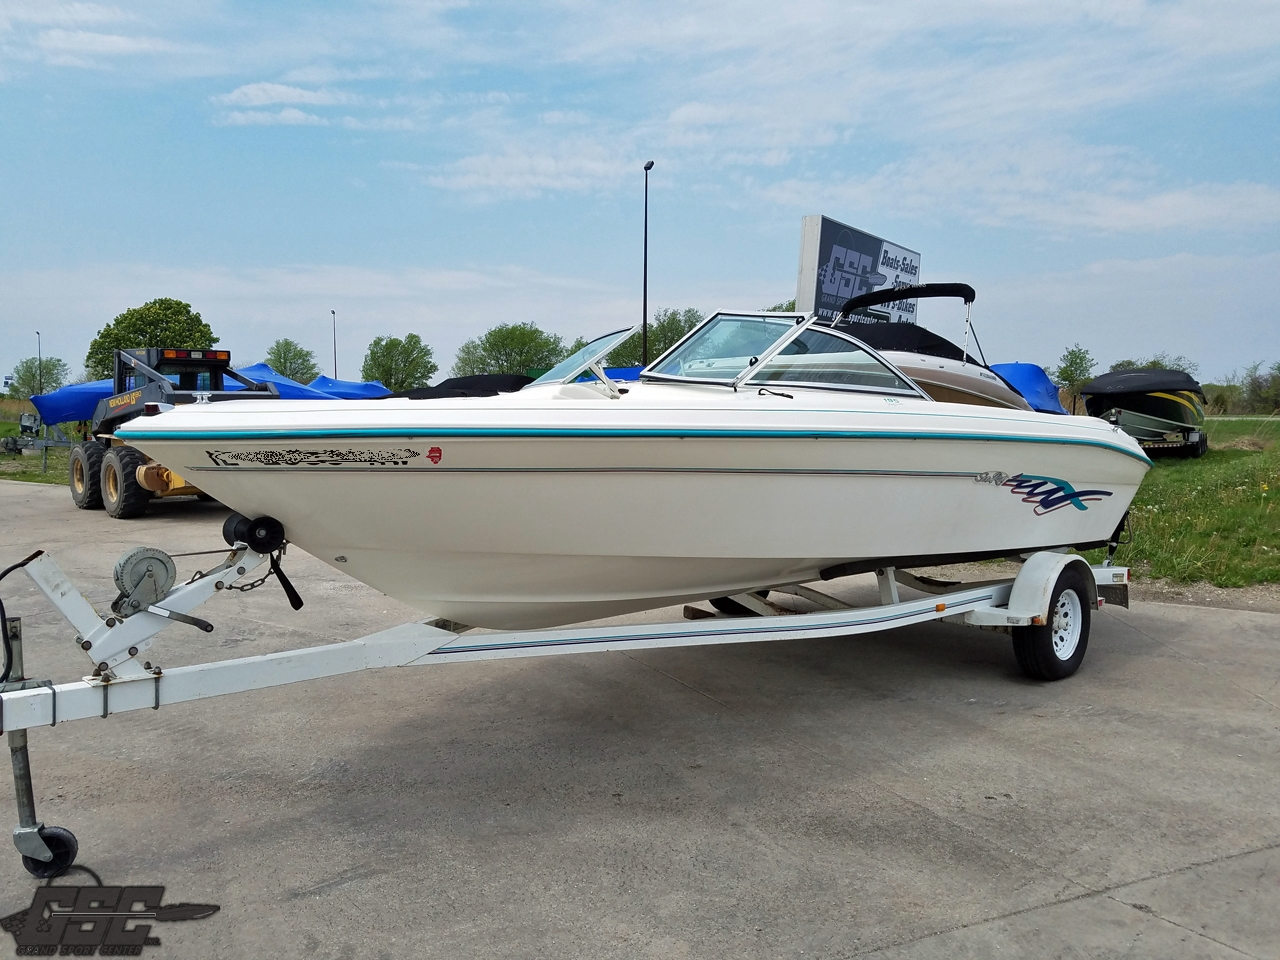 1995 SEARAY 195 FIVE SERIES OPEN BOW